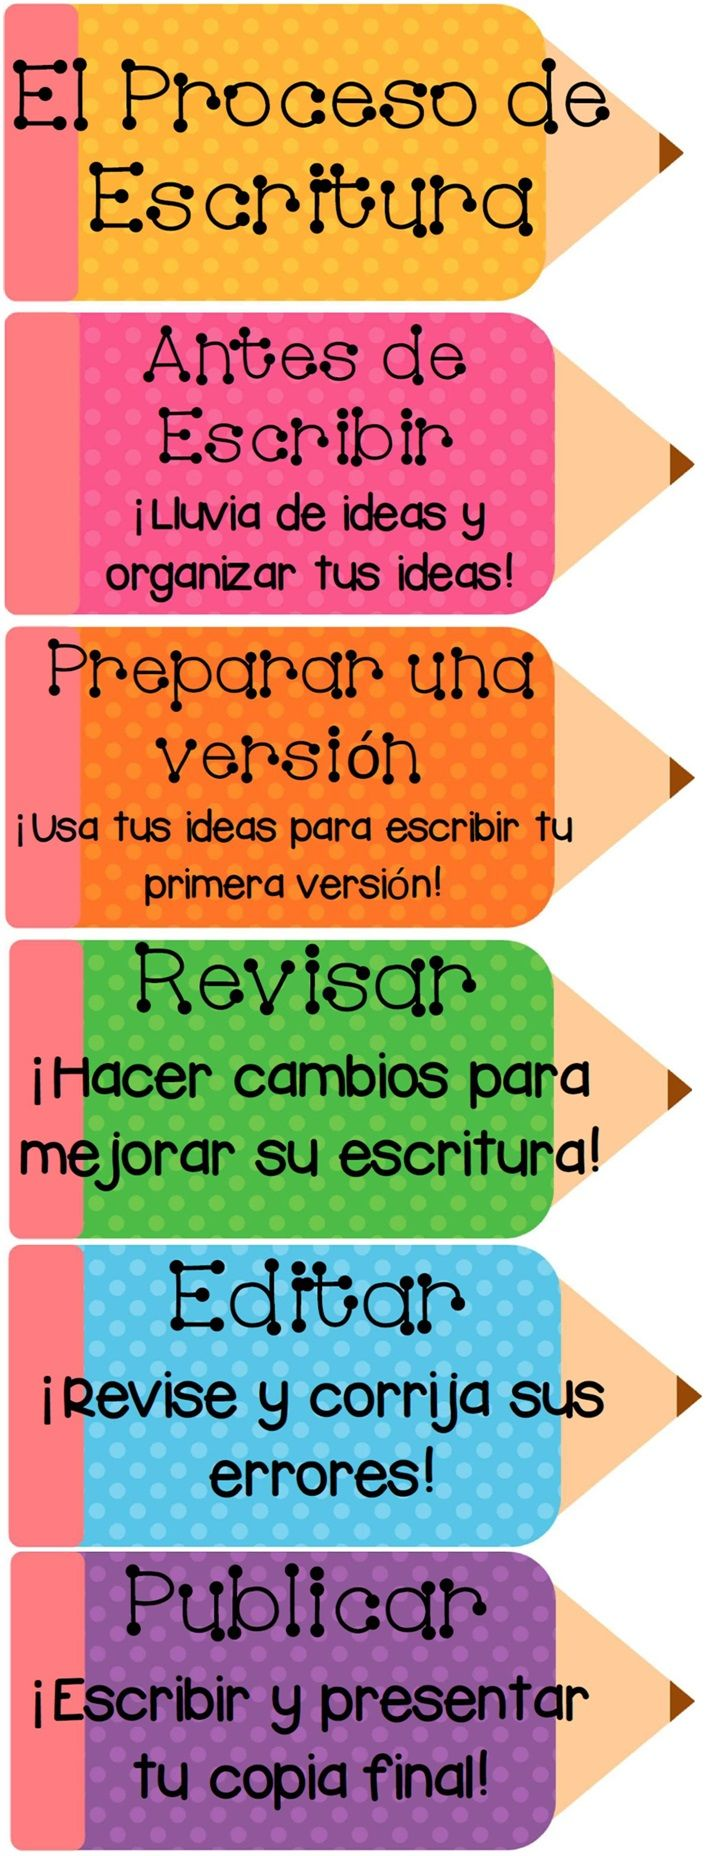 Writing Process Pencils from the Polka Dot Design Writing Resource in Spanish. All my TPT products are available in custom colors, designs, and Spanish. Send requests to erf8518@yahoo.com